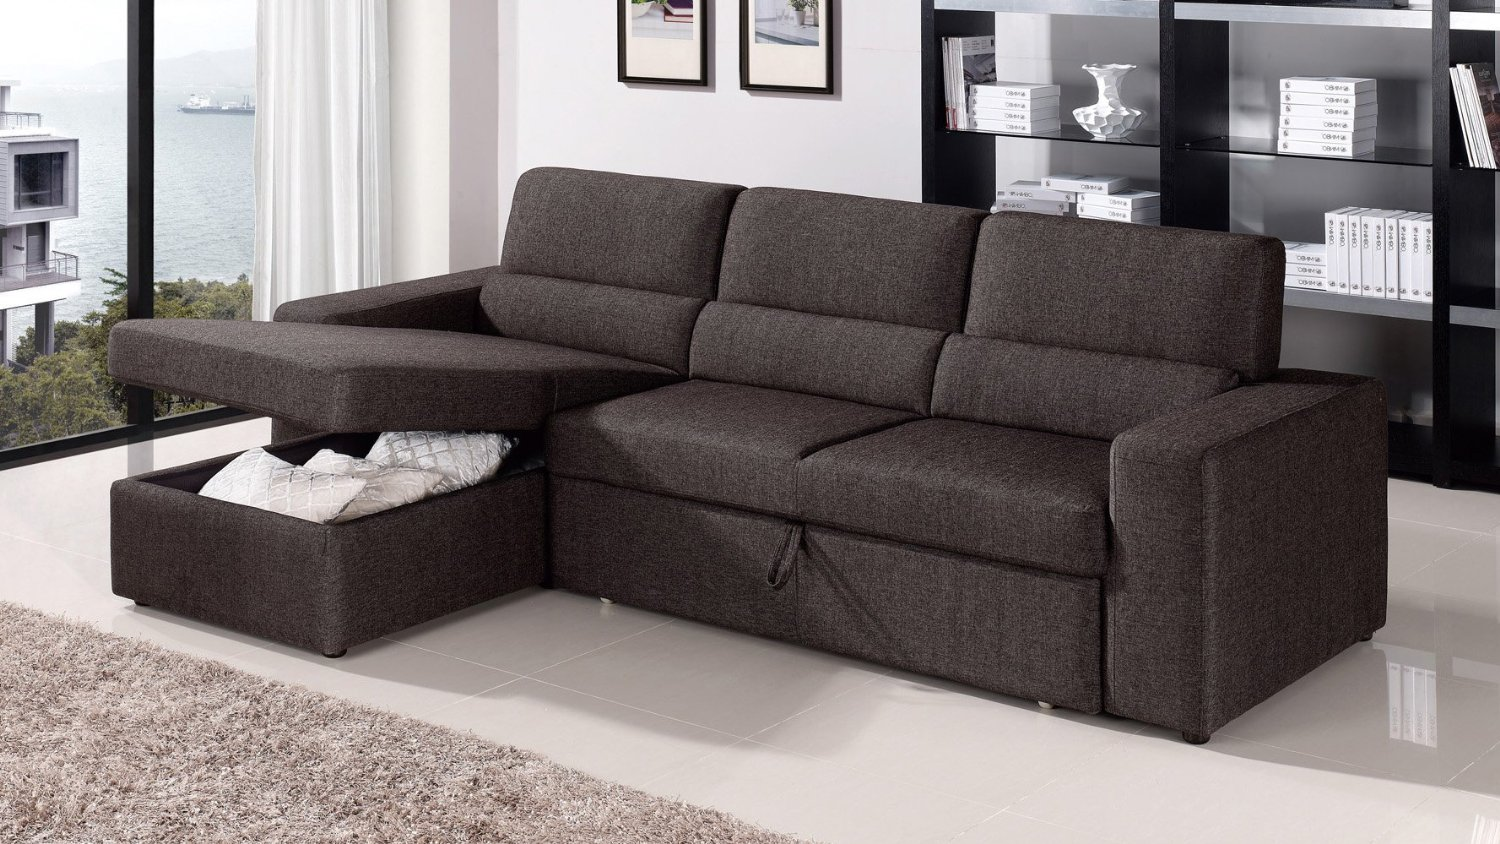 Perfect Sofa Sleeper Sectional 90 On Living Room Sofa Inspiration with Sofa Sleeper Sectional